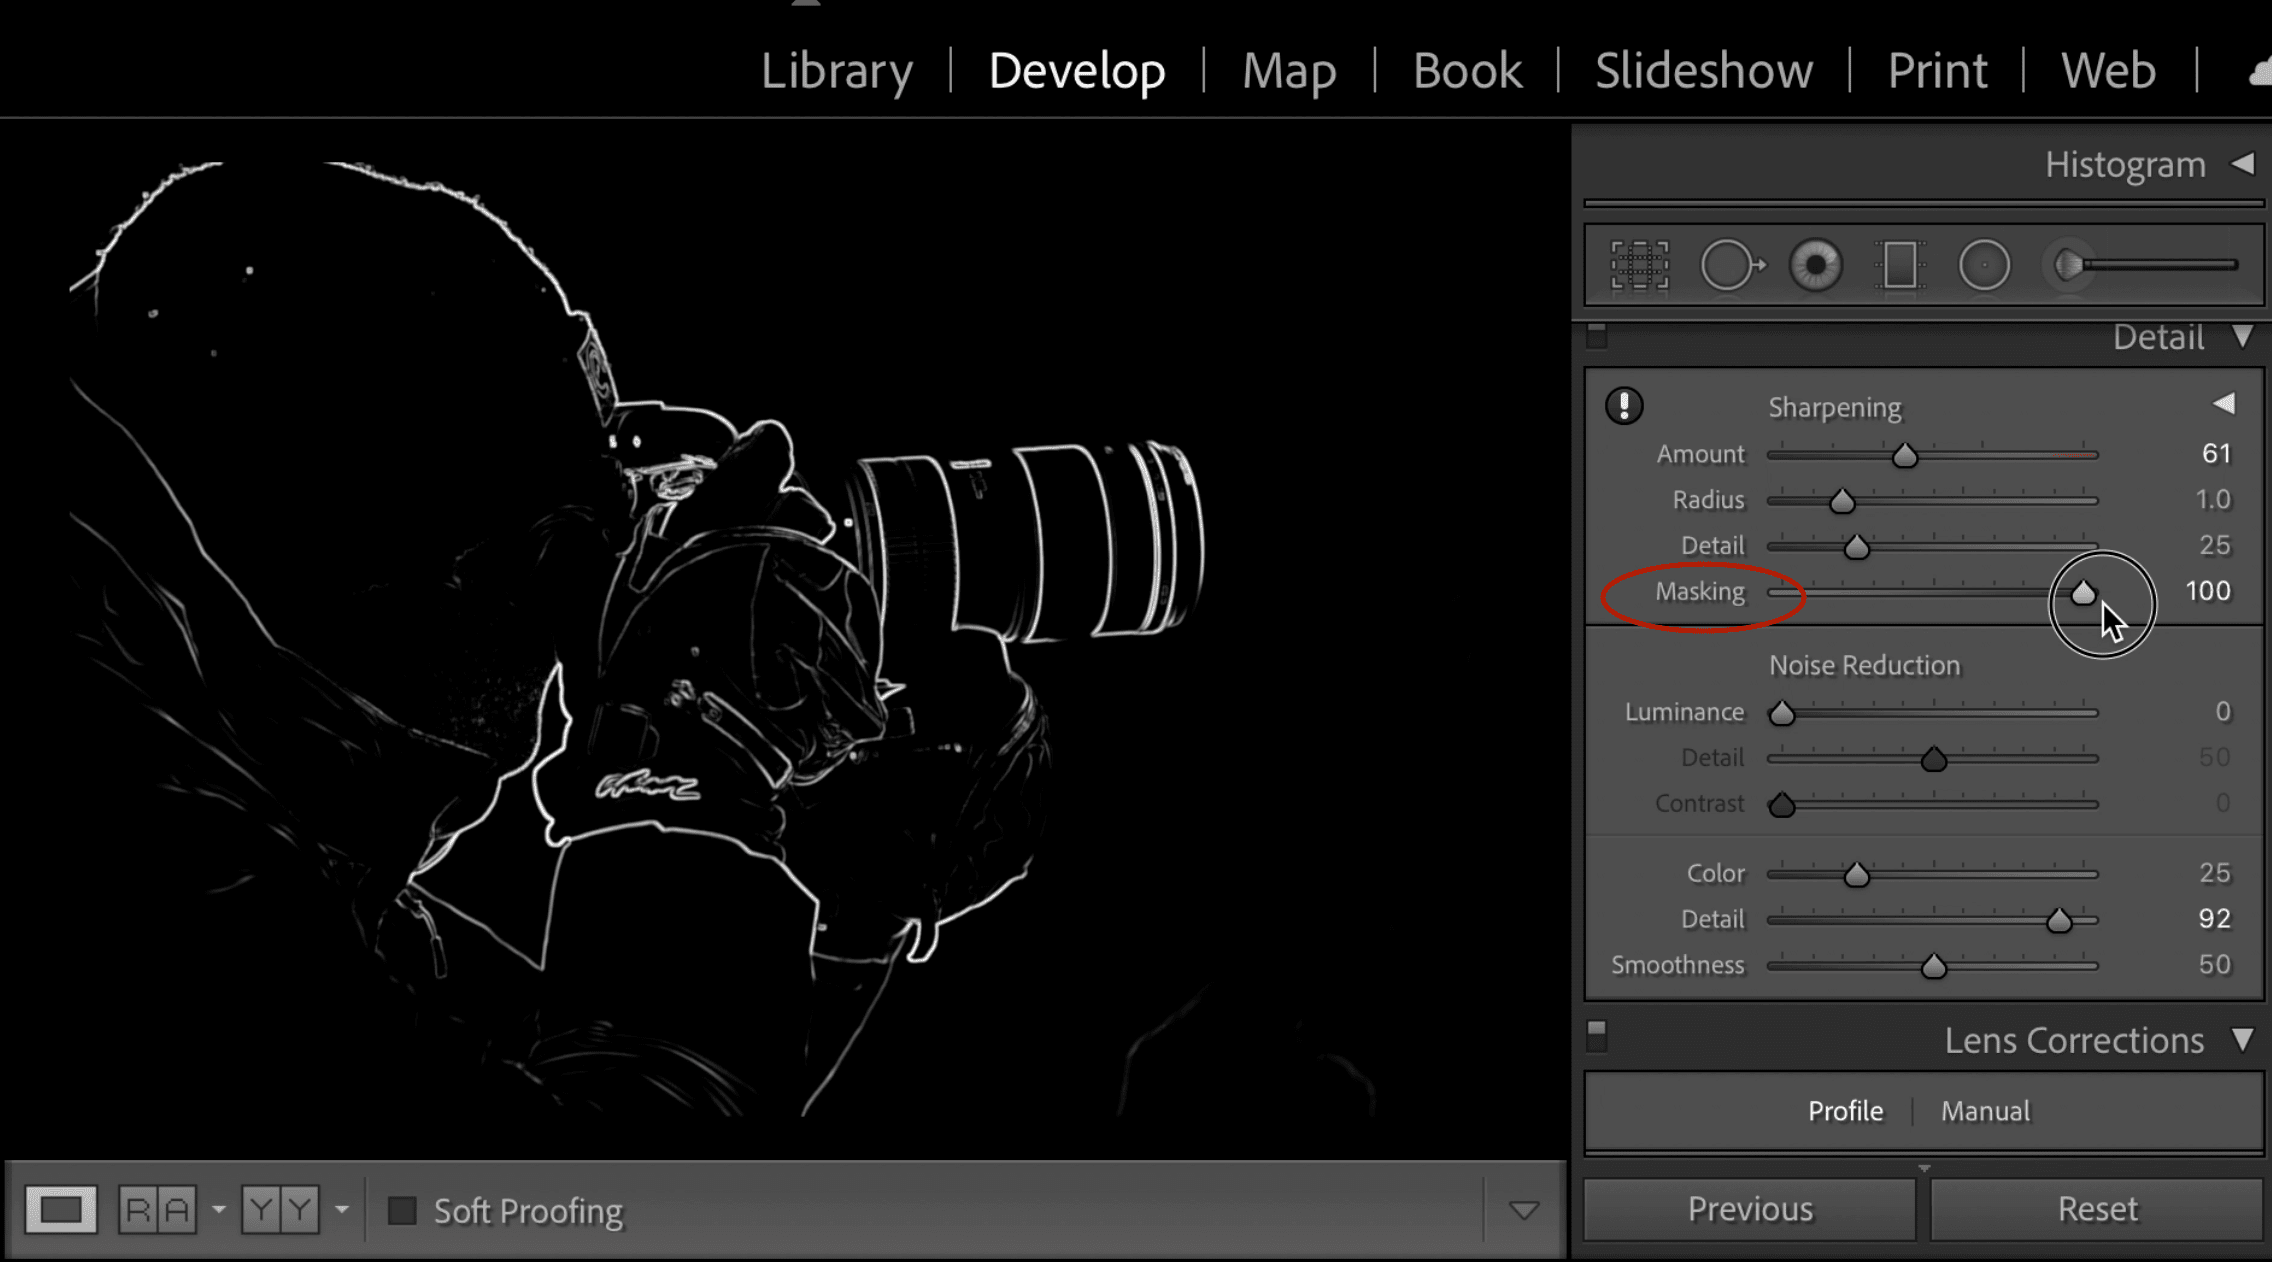 Mask sharpening in lightroom